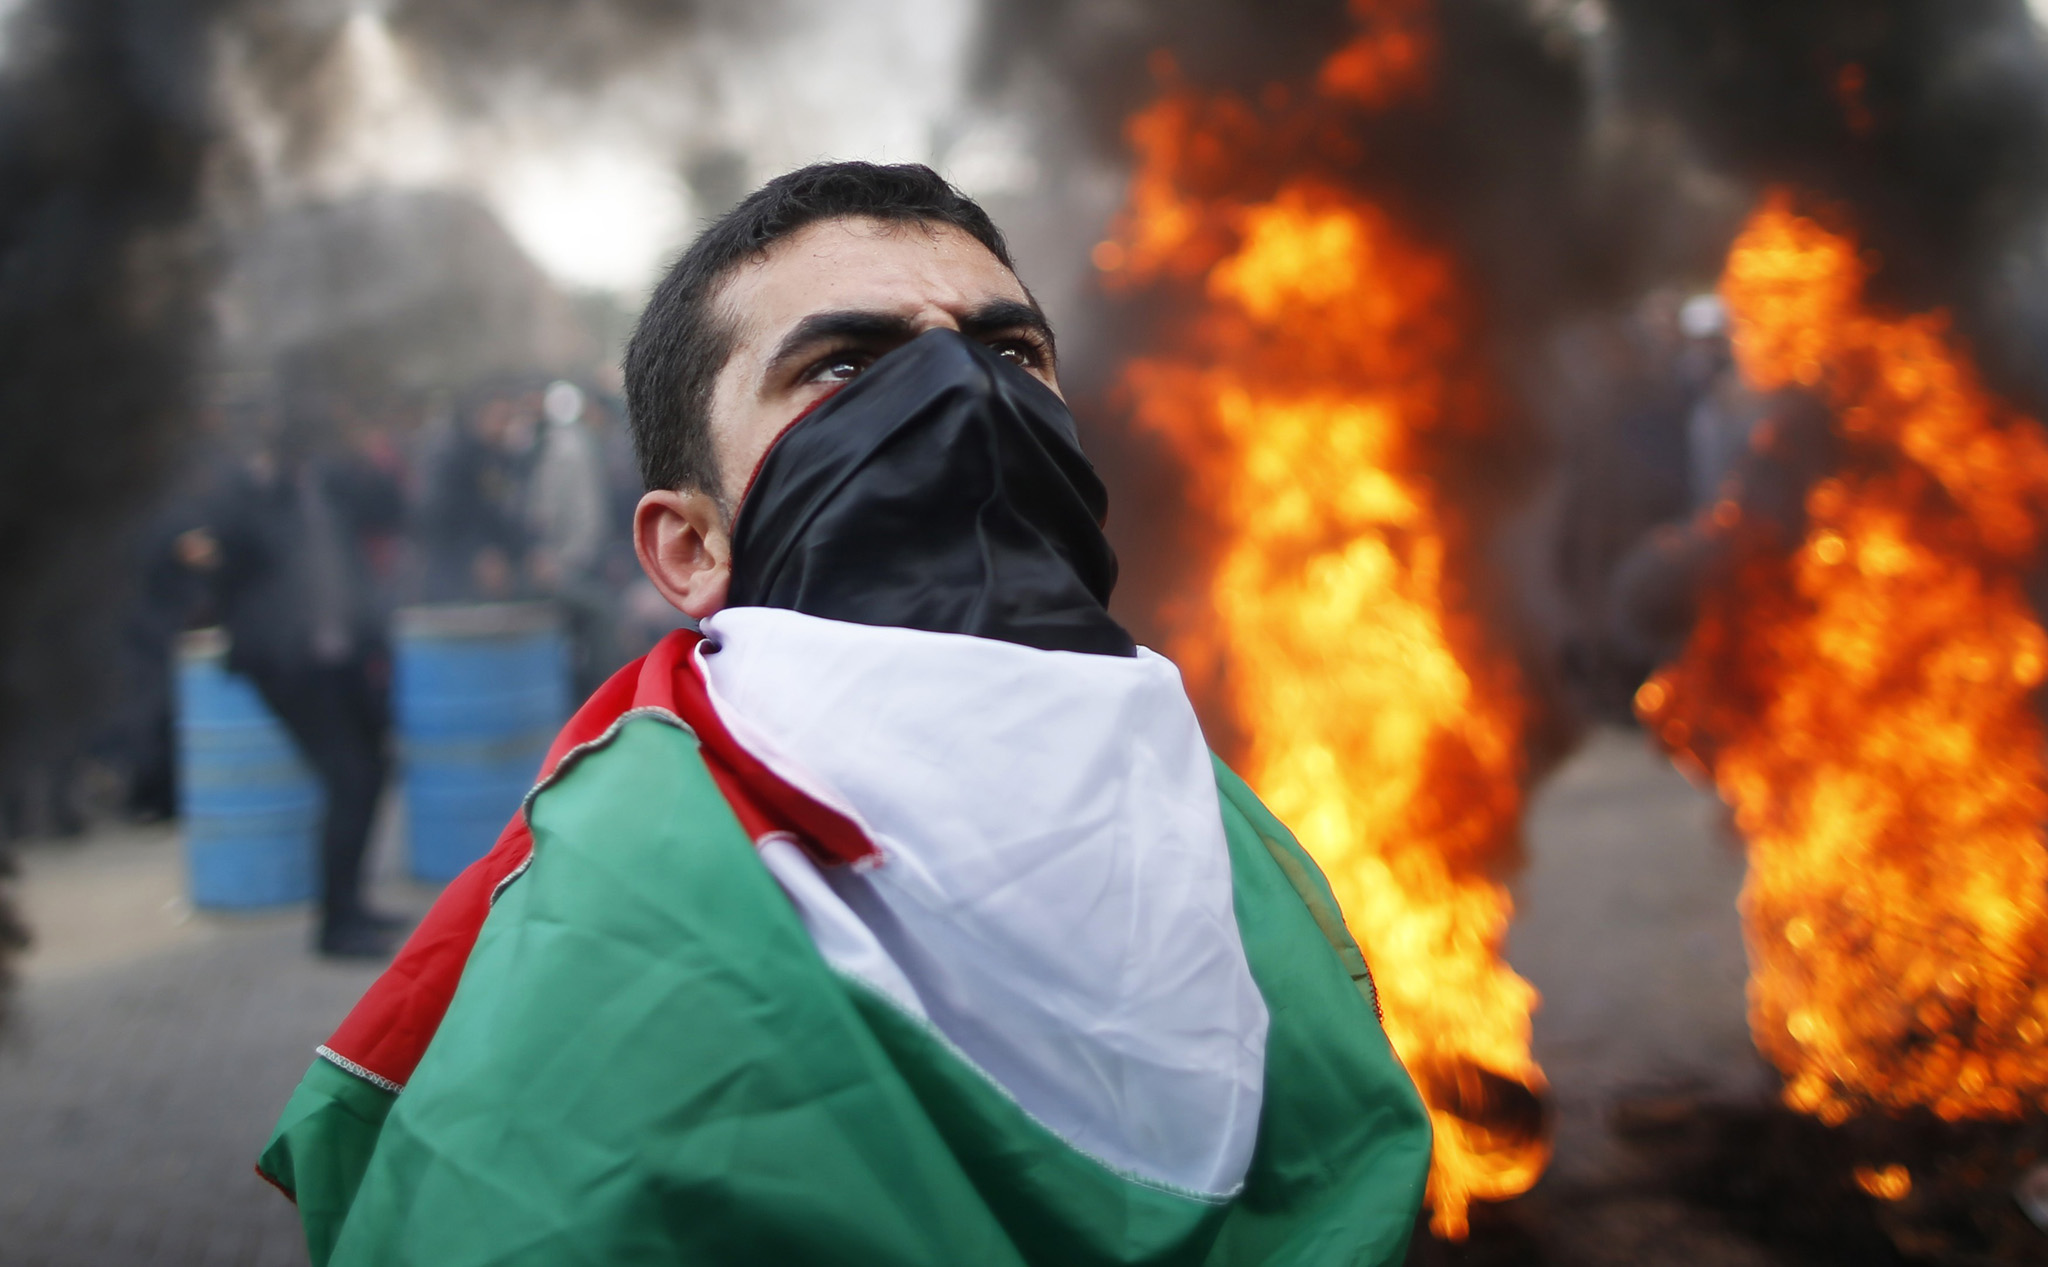 A Palestinian draped in a Palestinian flag stands next to burning tyres during a protest against the decision by the main U.N. aid agency to suspend payments to tens of thousands of Palestinians for repairs to their homes damaged in last summer's war, outside the headquarters of the United Nations Special Coordinator in Gaza City January 28, 2015. Dozens of Palestinians, whose homes were destroyed and damaged in the summer war, attacked the office of the United Nations Special Coordinator in Gaza, to protest the decision by a key United Nations organisation to suspend its cash aid to them. Some burnt tyres outside the gate while others tried to storm in through climbing the outer walls. Some hurled stones into the headquarters.